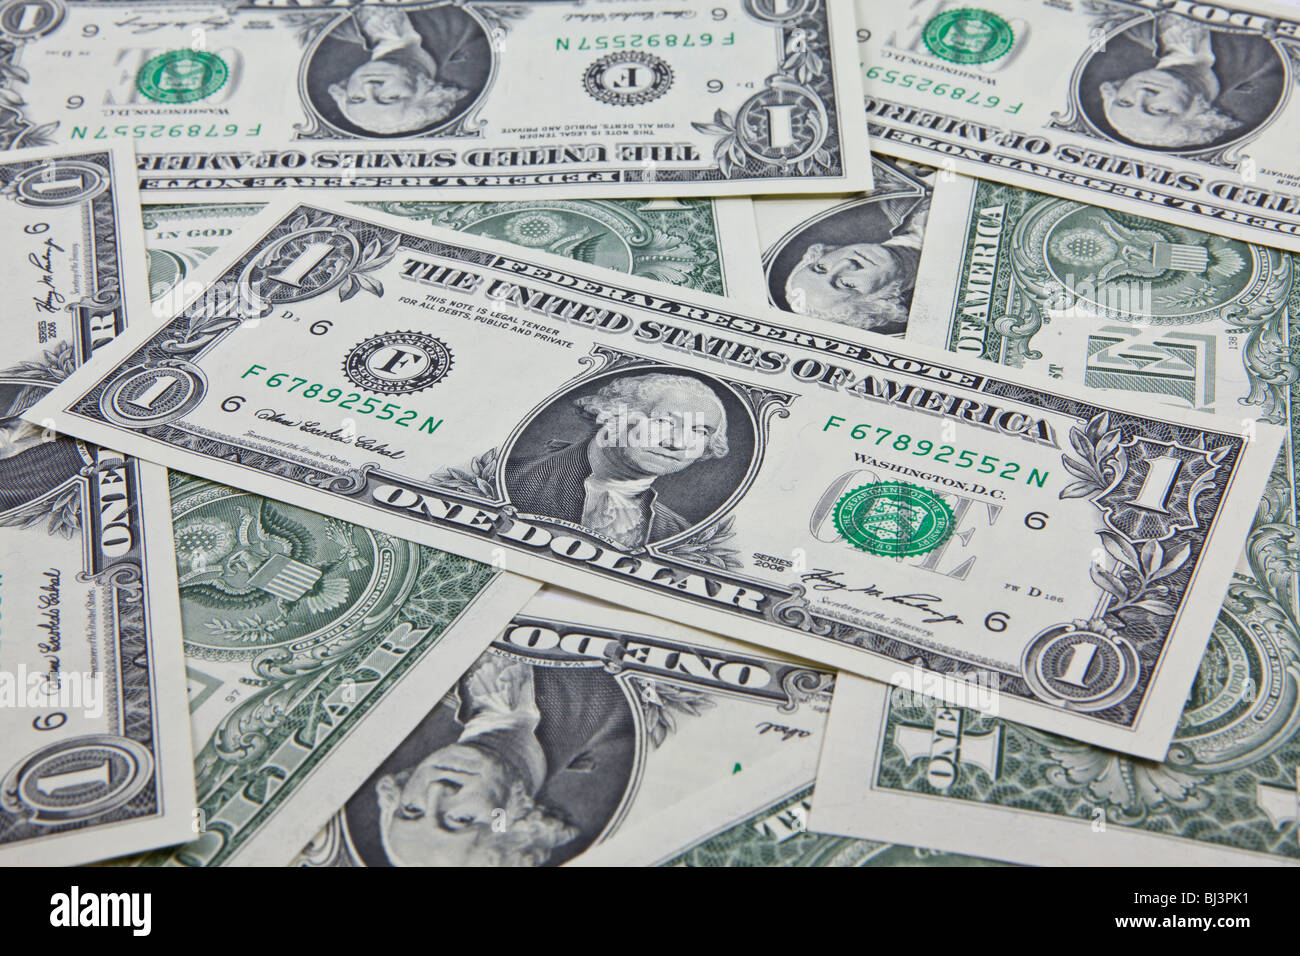 One-dollar bills - Stock Image